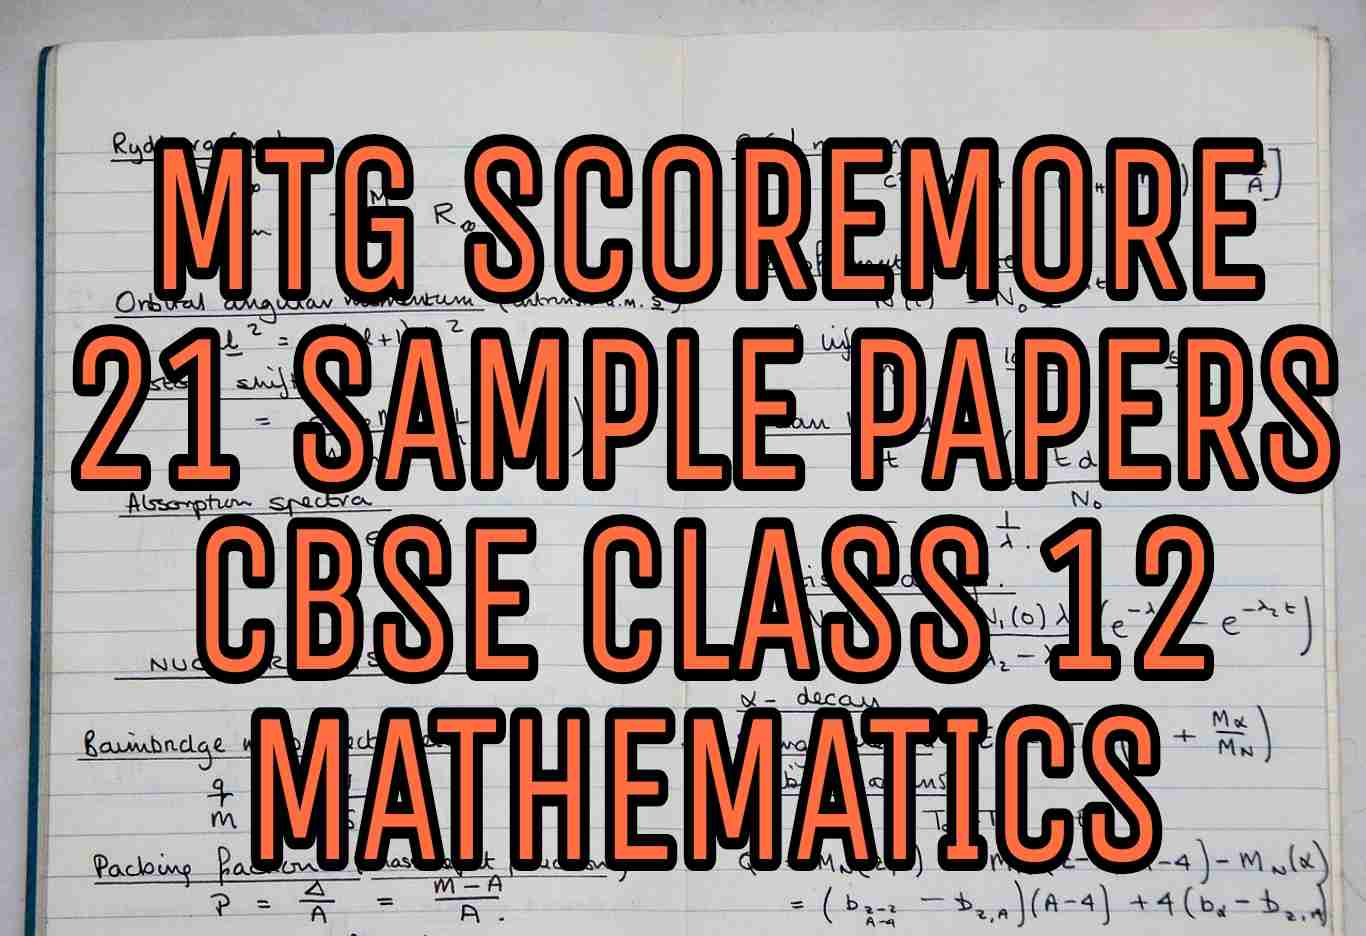 MTG SCOREMORE 21 SAMPLE PAPERS CBSE CLASS 12 MATHEMATICS